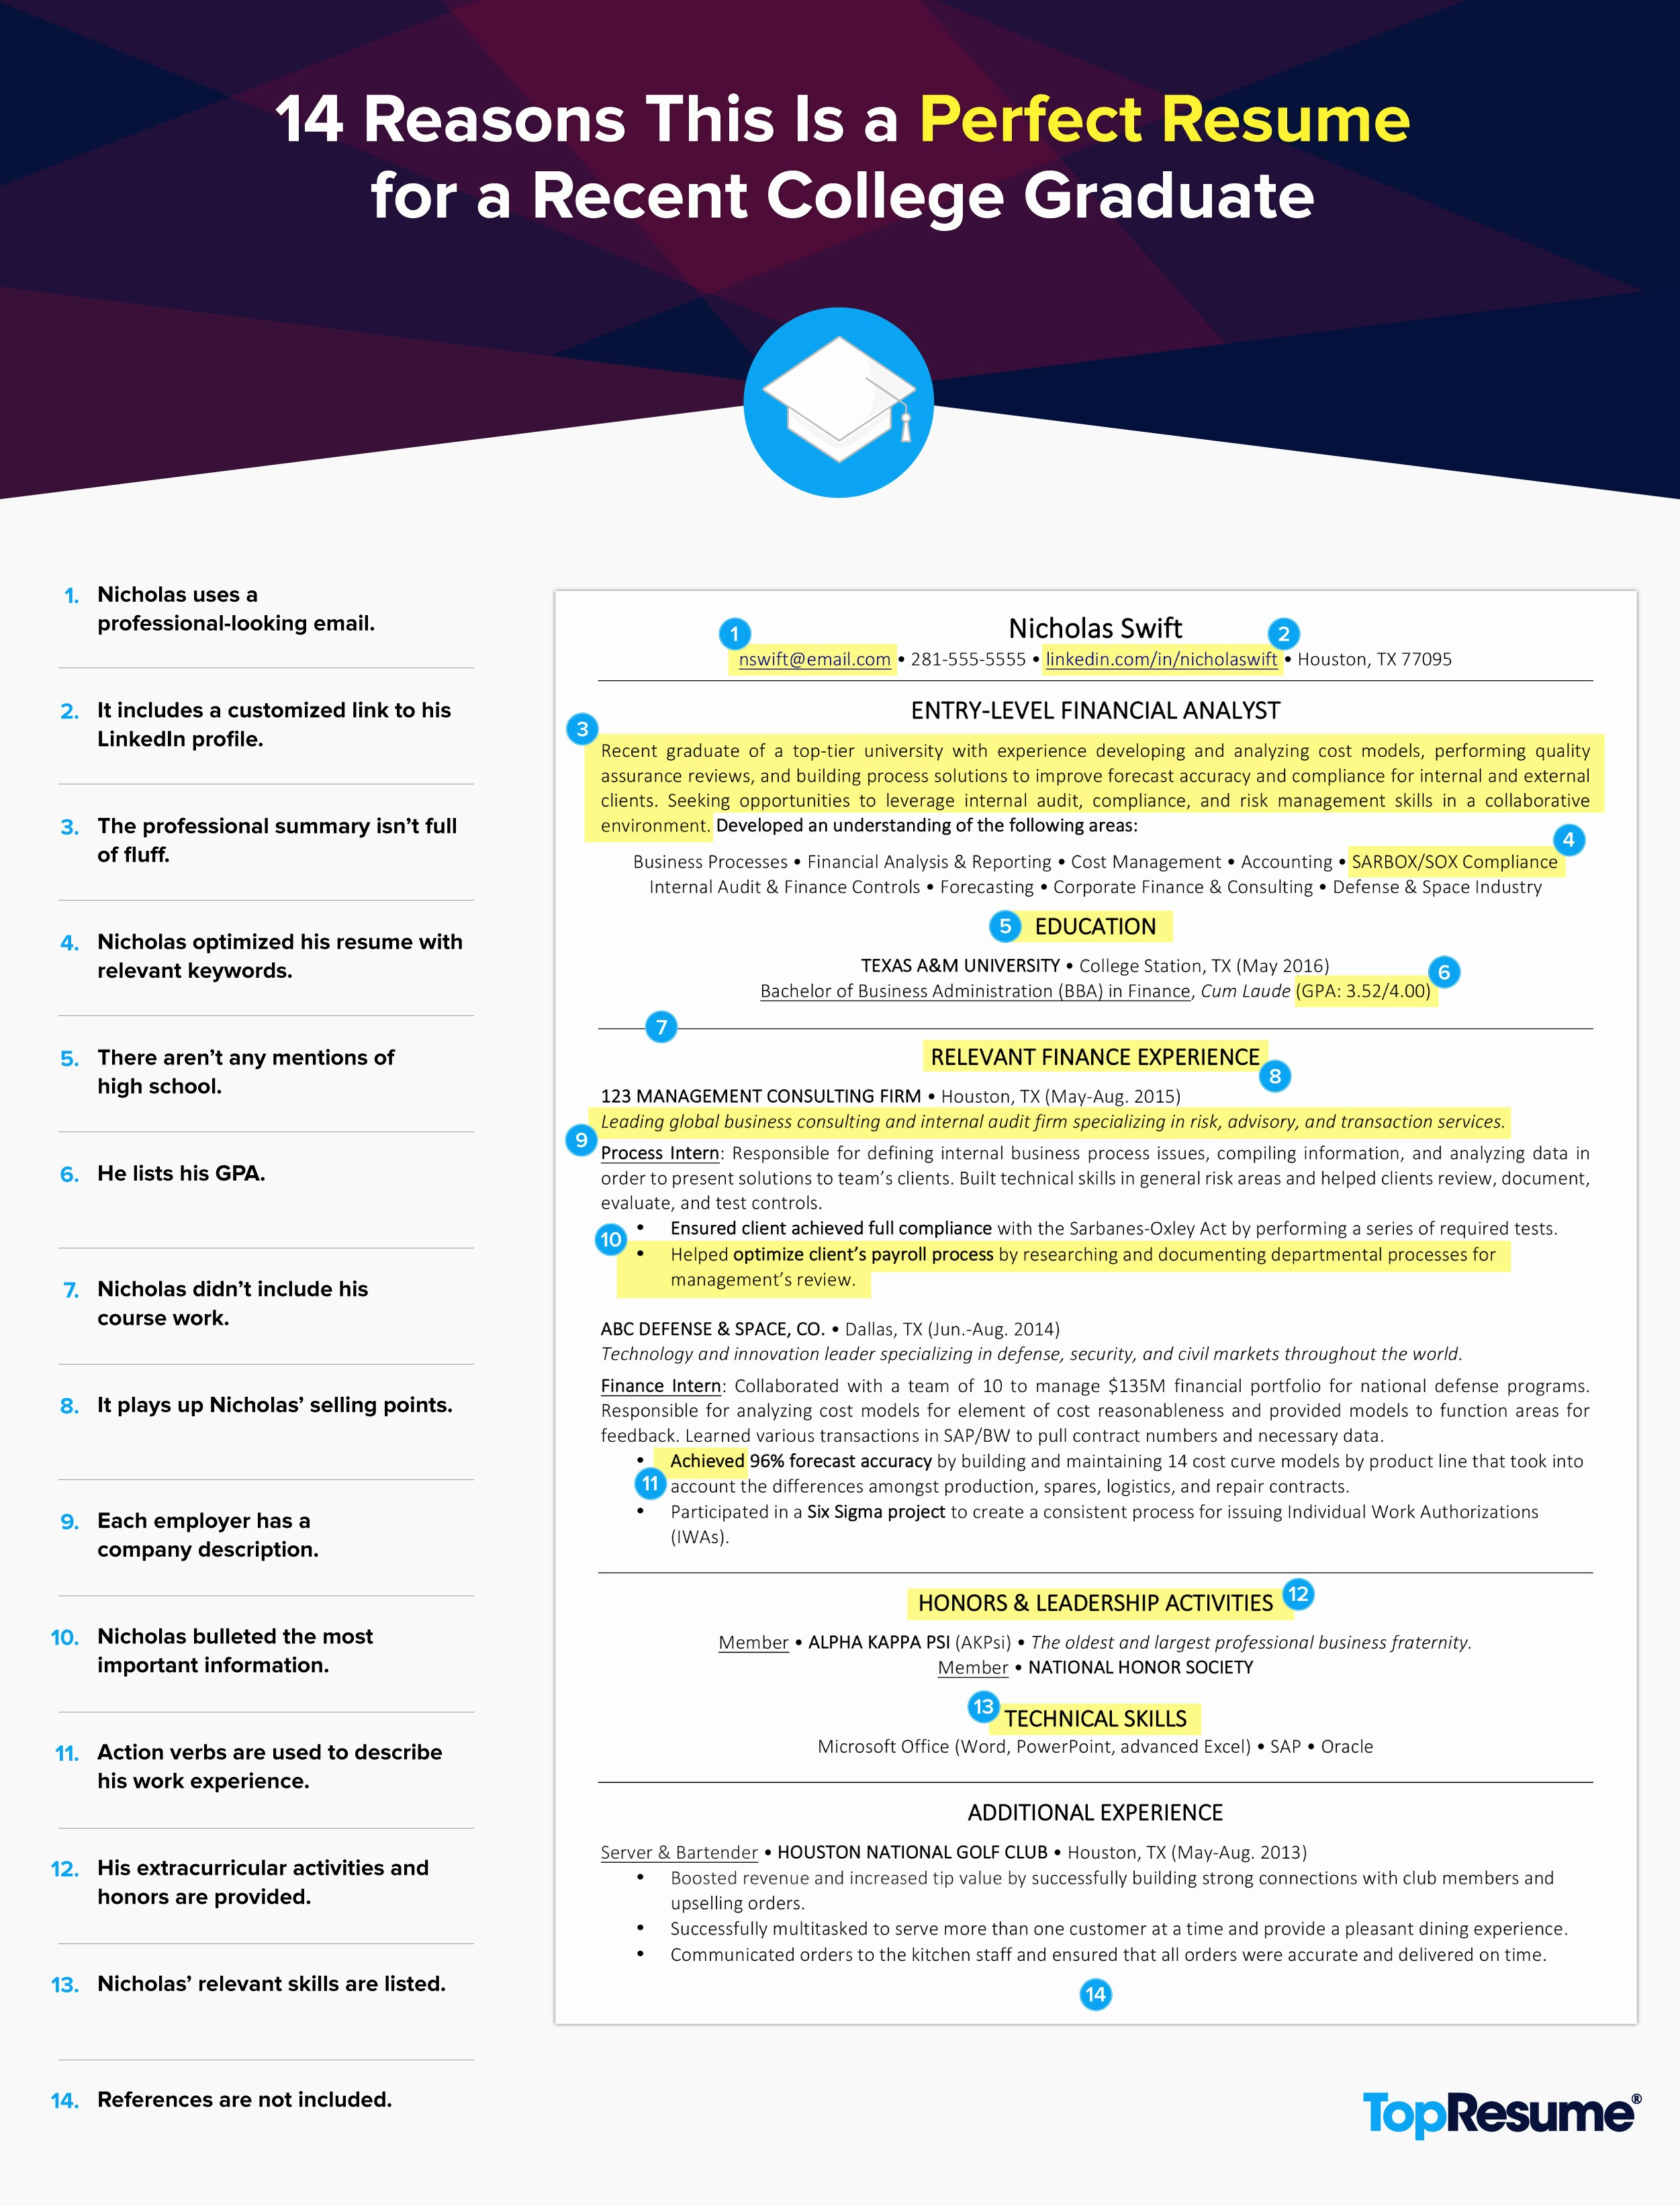 Resume Template for New Graduates Best Of 14 Reasons This is A Perfect Recent College Graduate